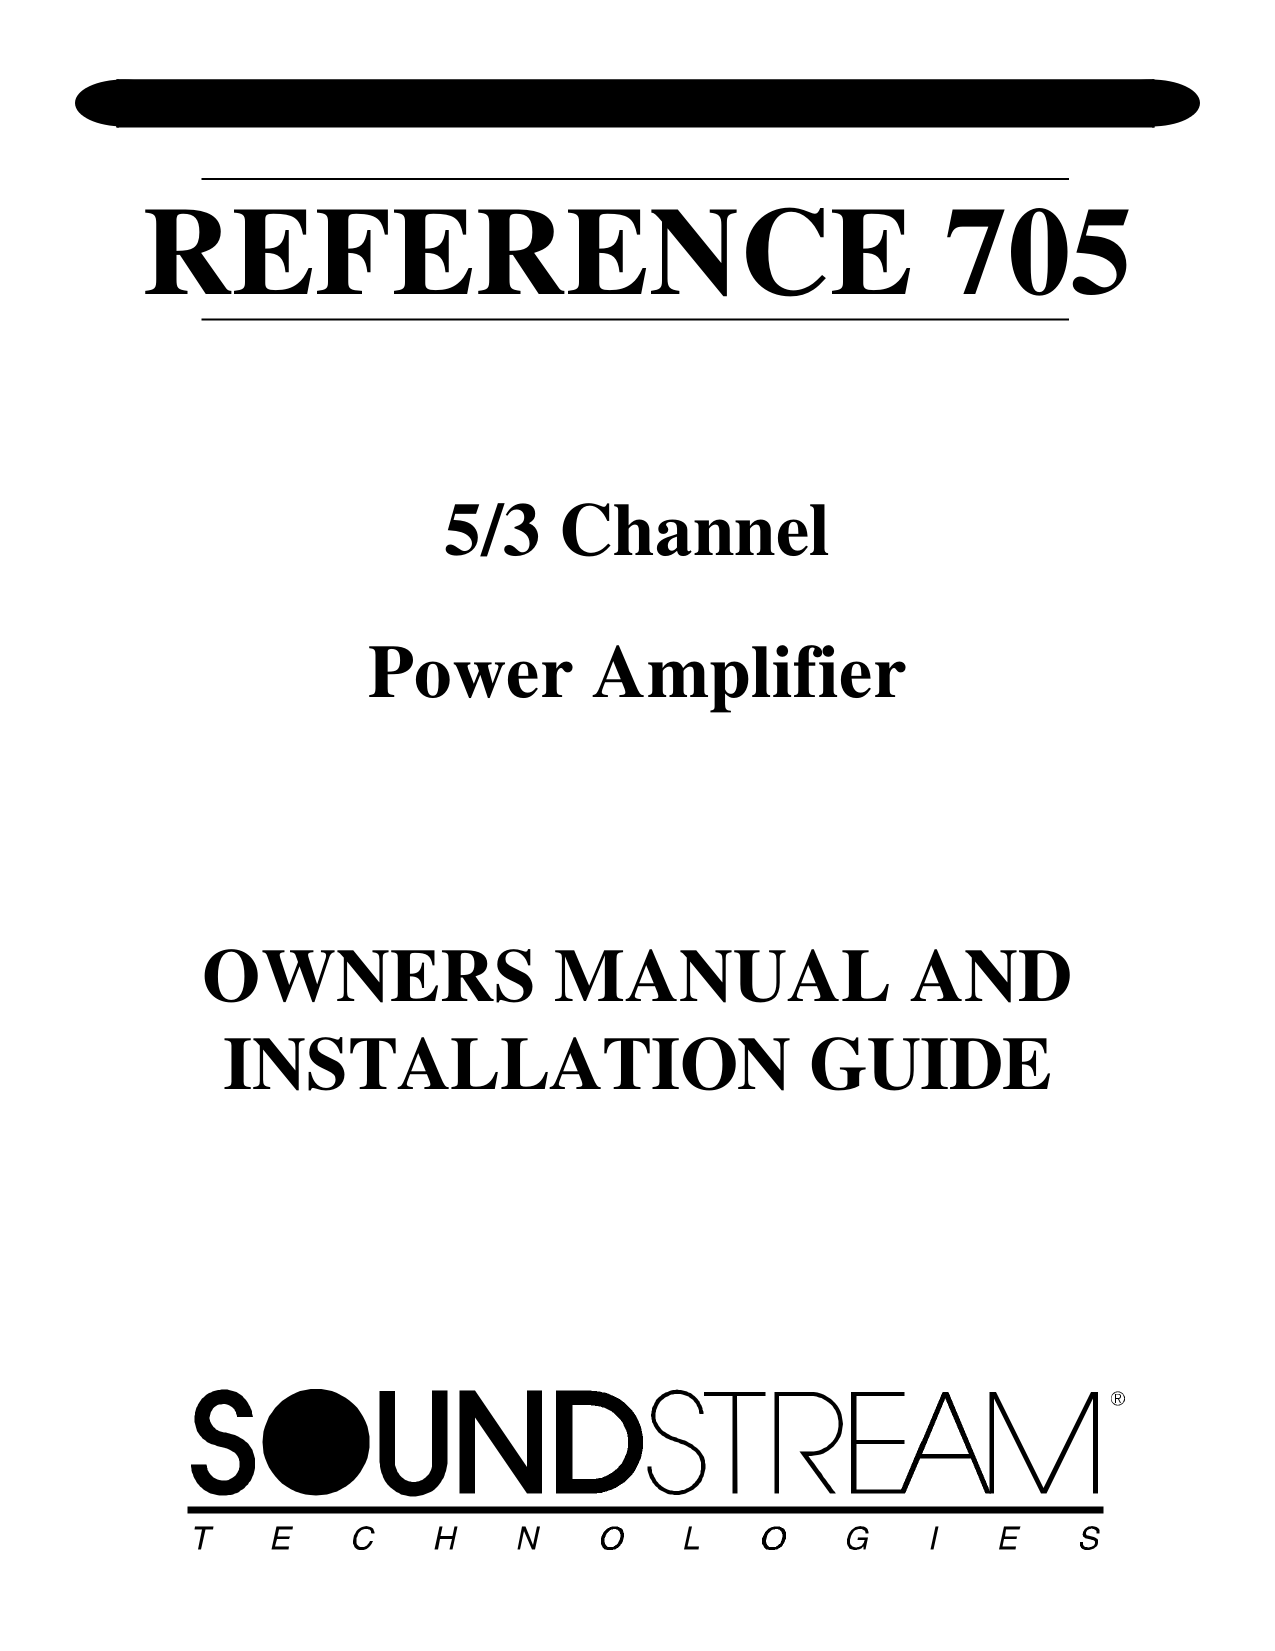 Download free pdf for Soundstream Reference Series 300 Car